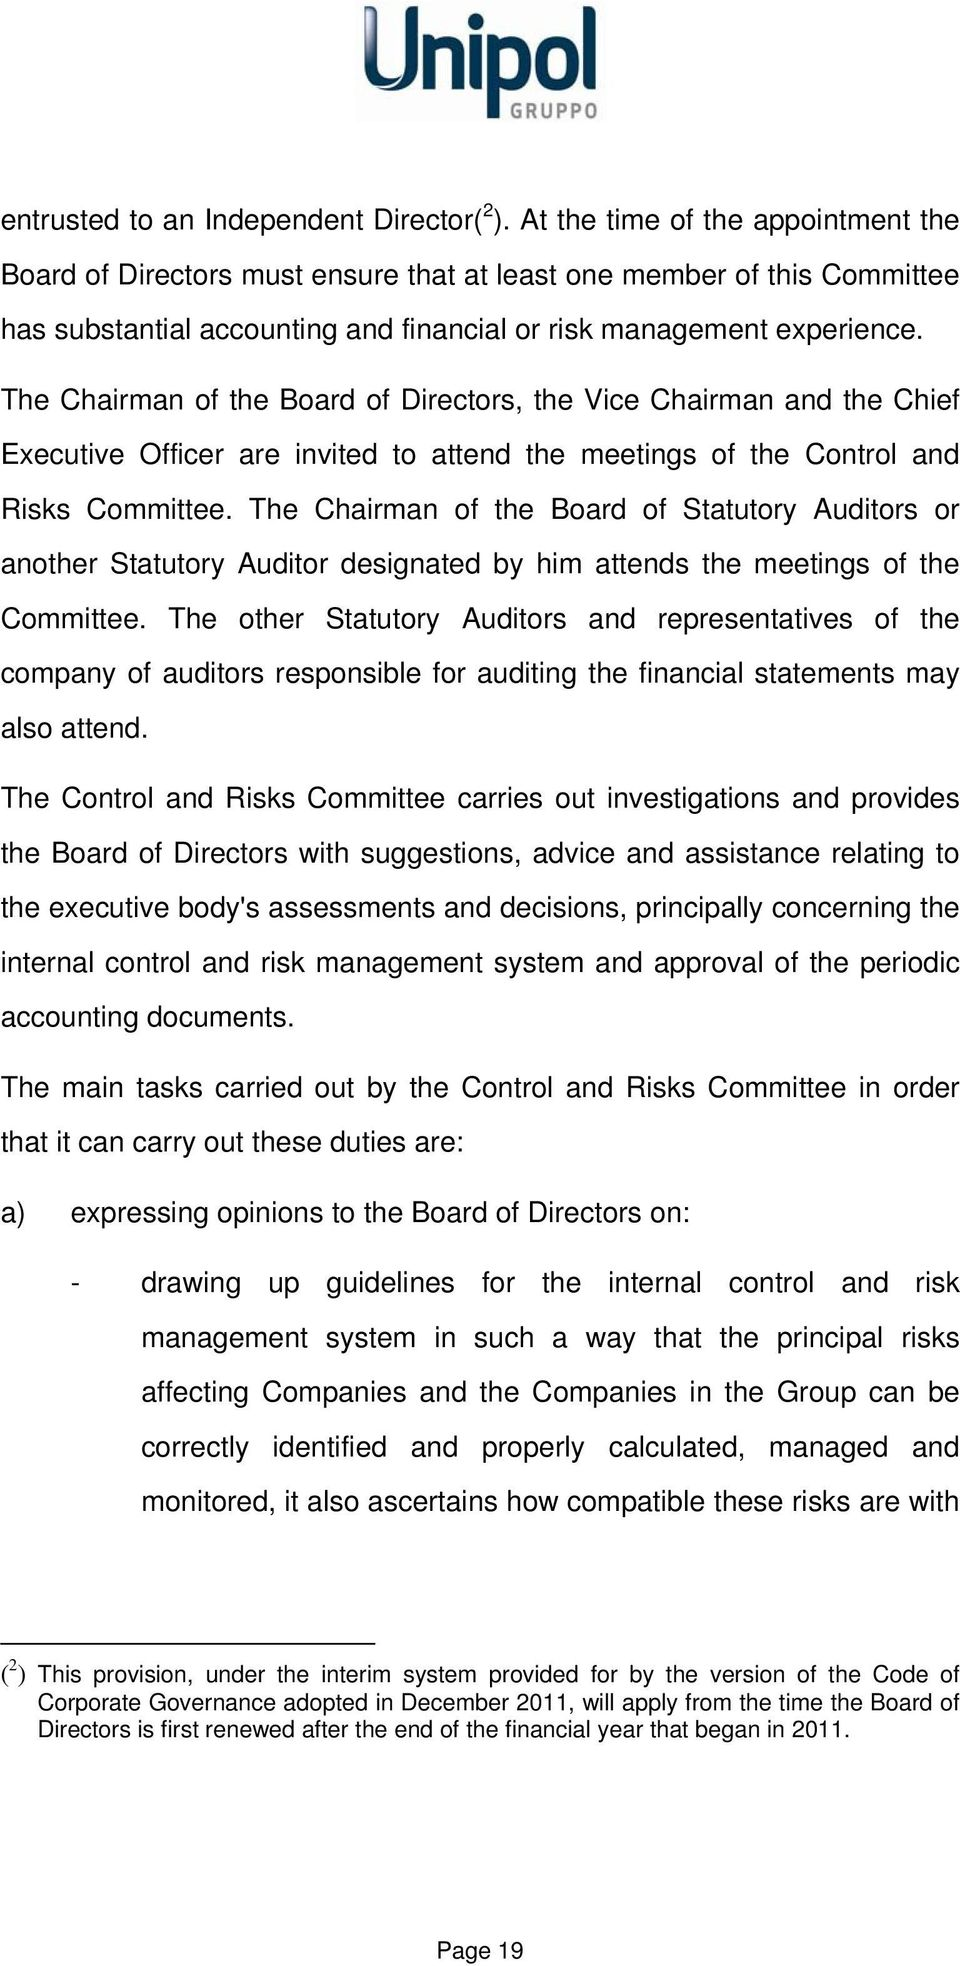 The Chairman of the Board of Directors, the Vice Chairman and the Chief Executive Officer are invited to attend the meetings of the Control and Risks Committee.